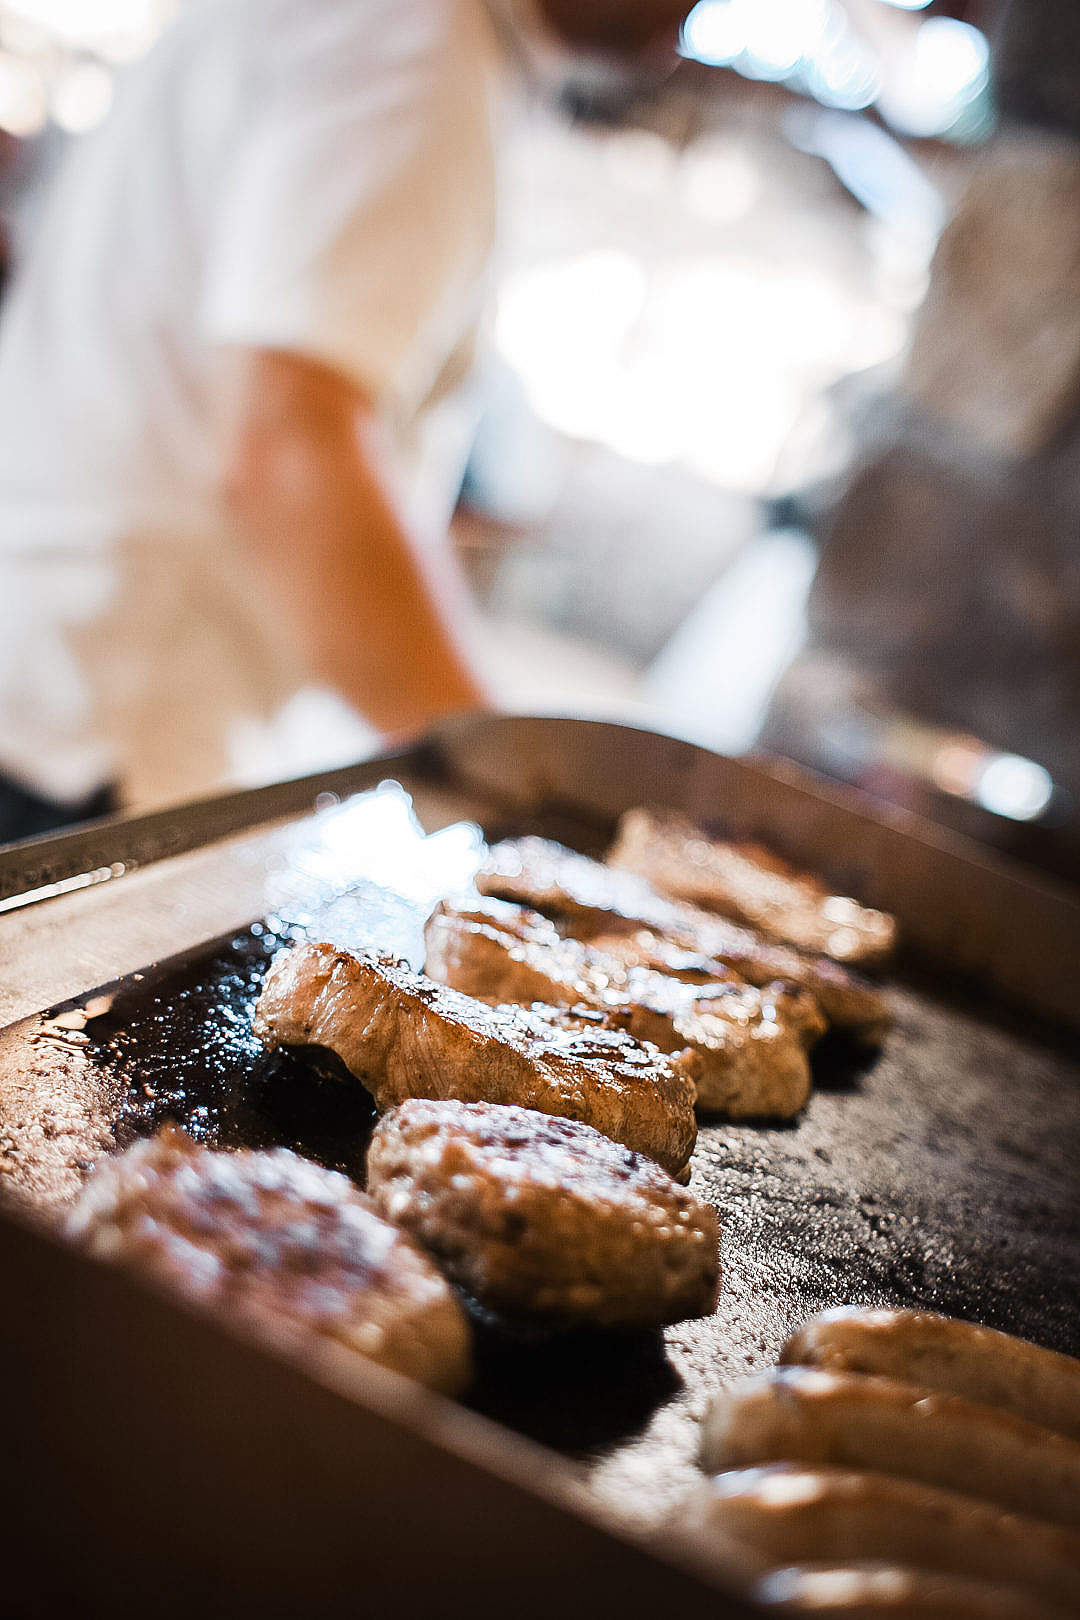 Download Steak on a Grill FREE Stock Photo